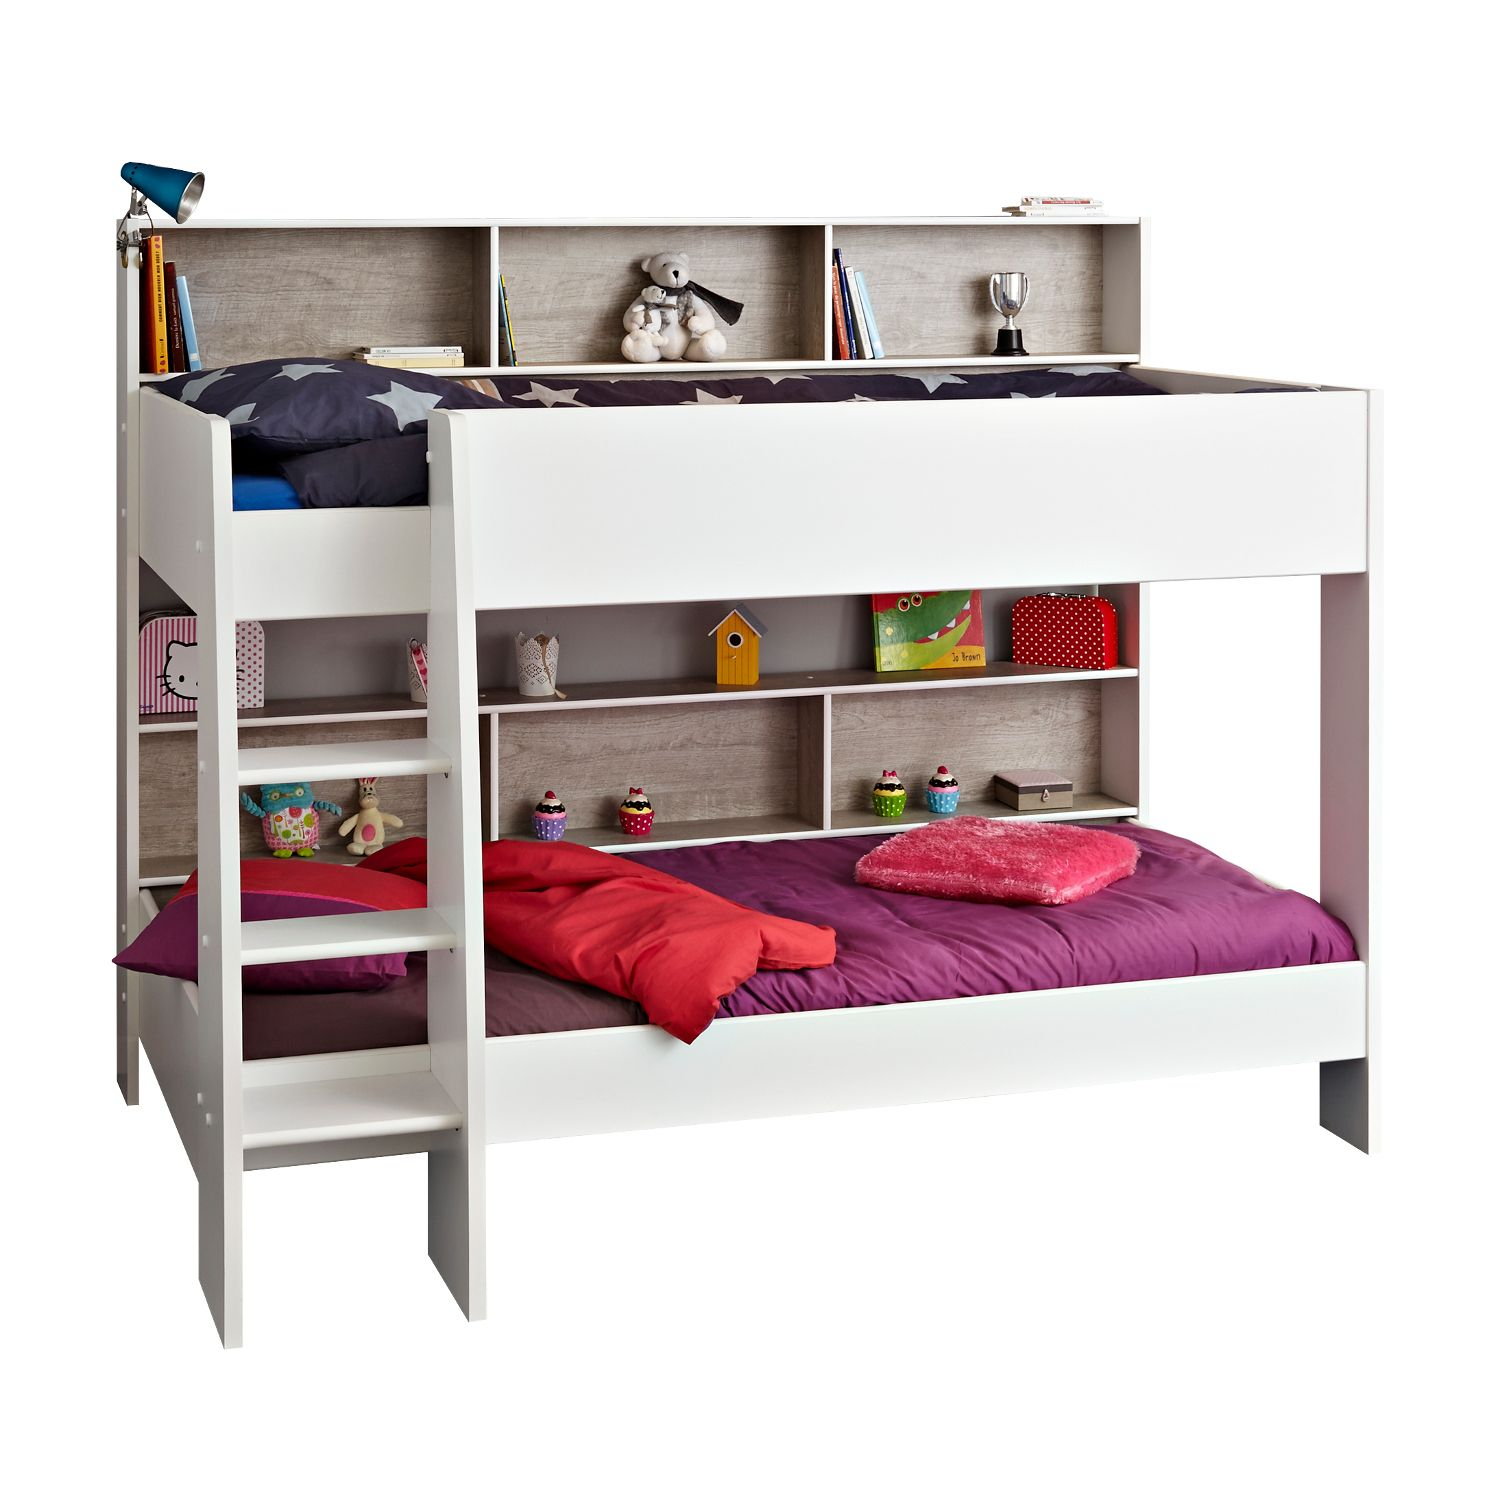 Modern loft bed ideas  Parisot Taylor Bunk Bed FREE DELIVERY Next Day  Select Day up to